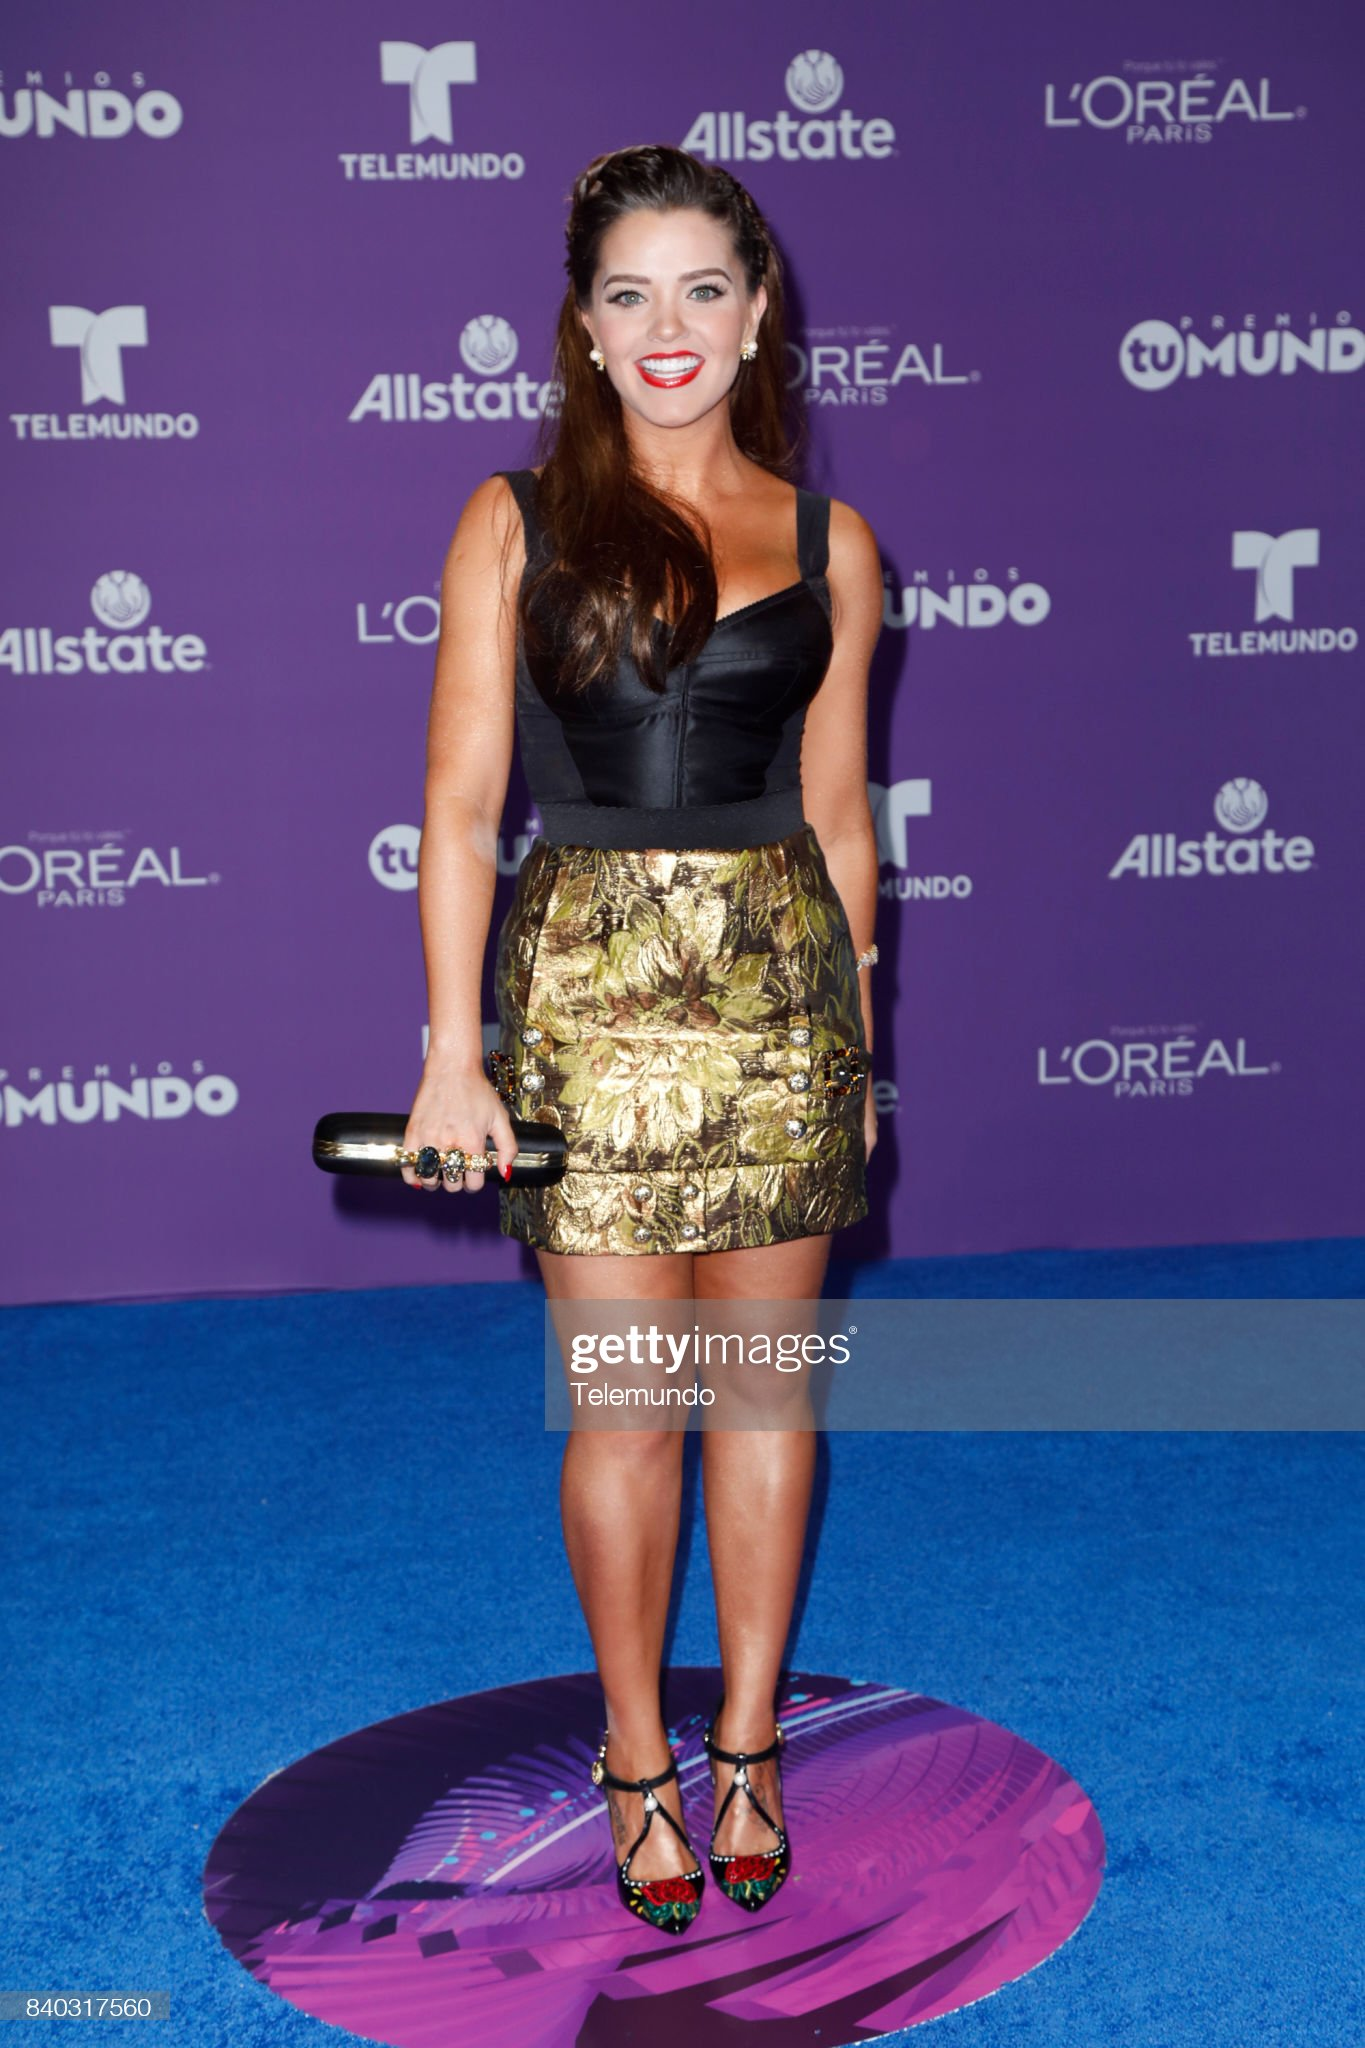 https://media.gettyimages.com/photos/blue-carpet-pictured-thali-garcia-arrives-to-the-2017-premios-tu-at-picture-id840317560?s=2048x2048